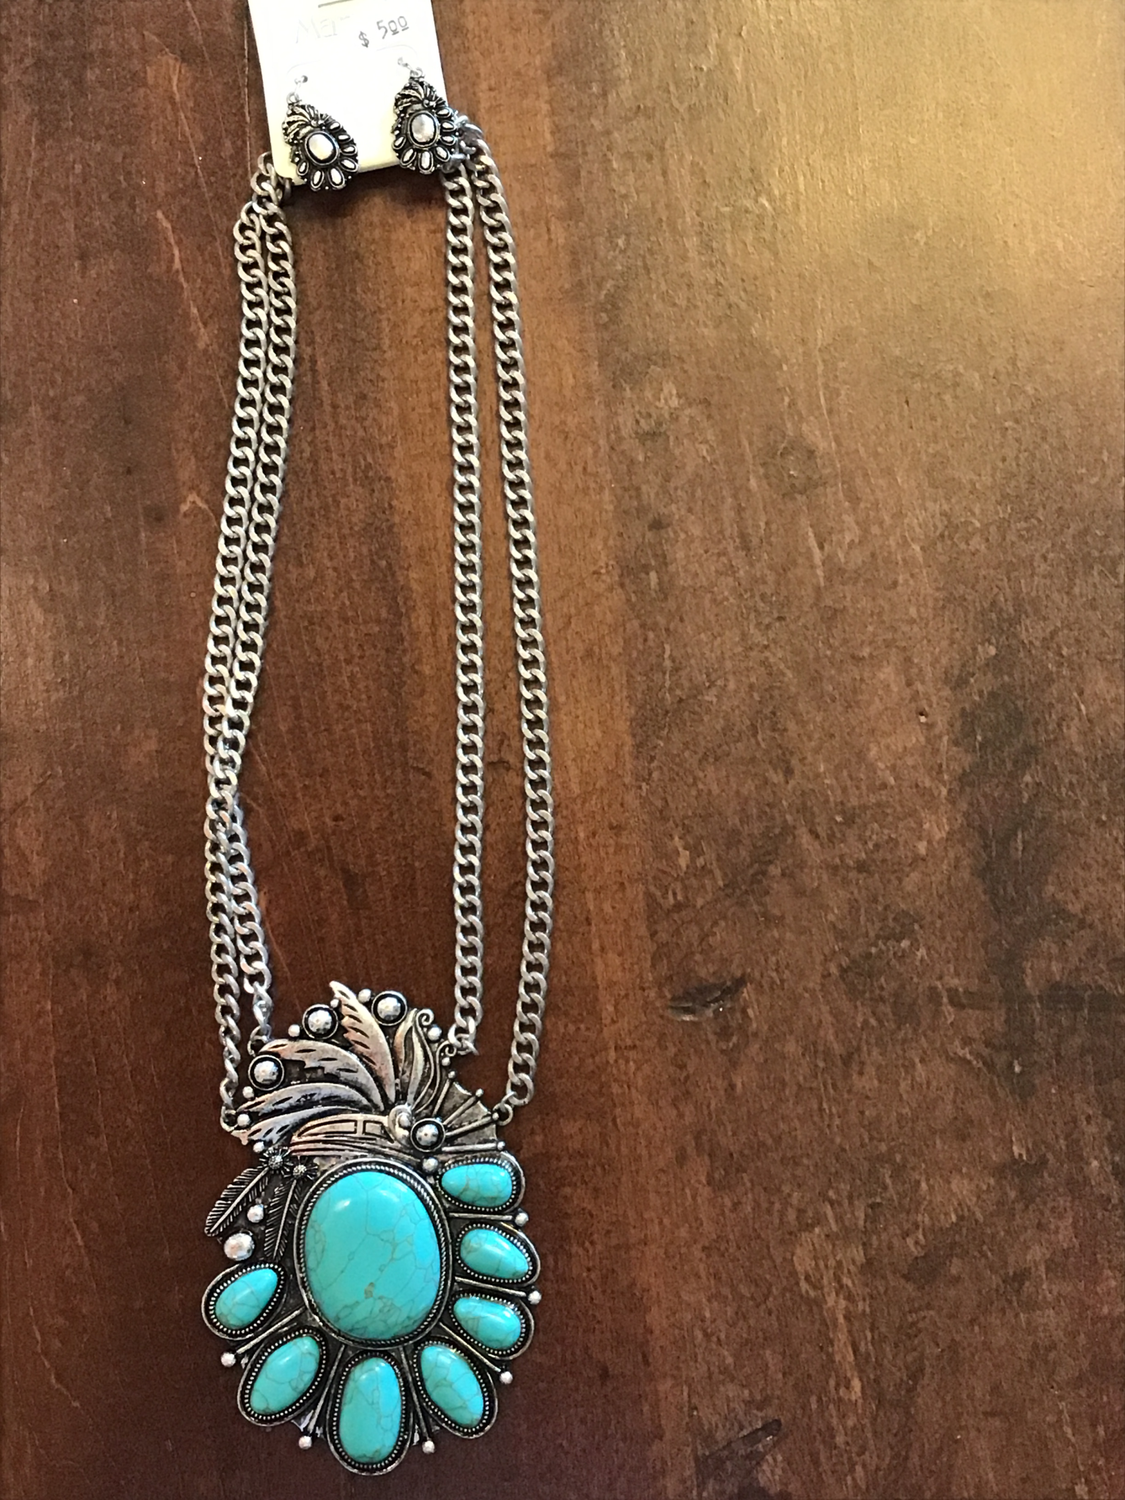 Faux Turquoise pendant and earring set